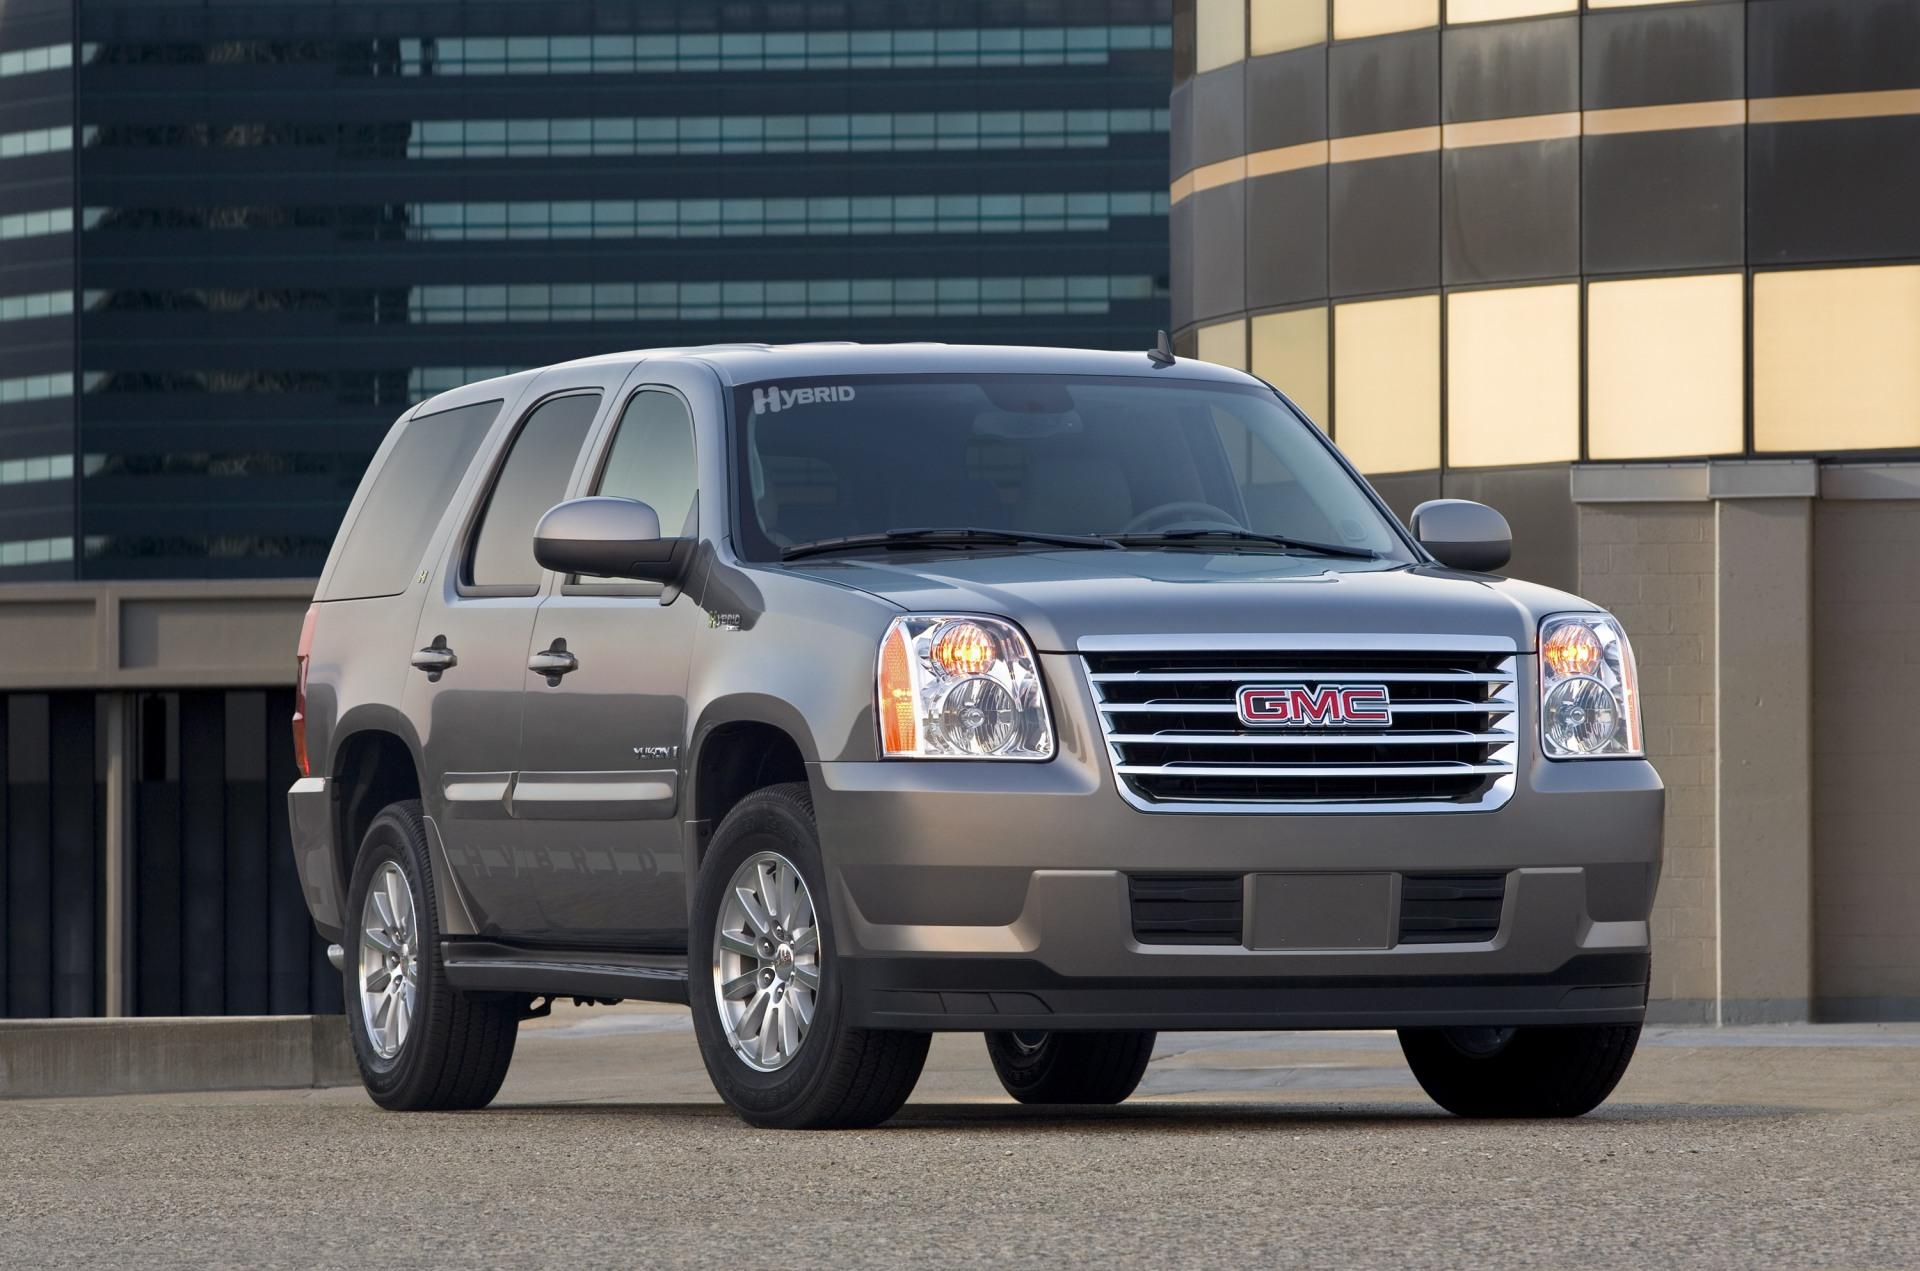 2009 GMC Yukon Hybrid News and Information | conceptcarz.com